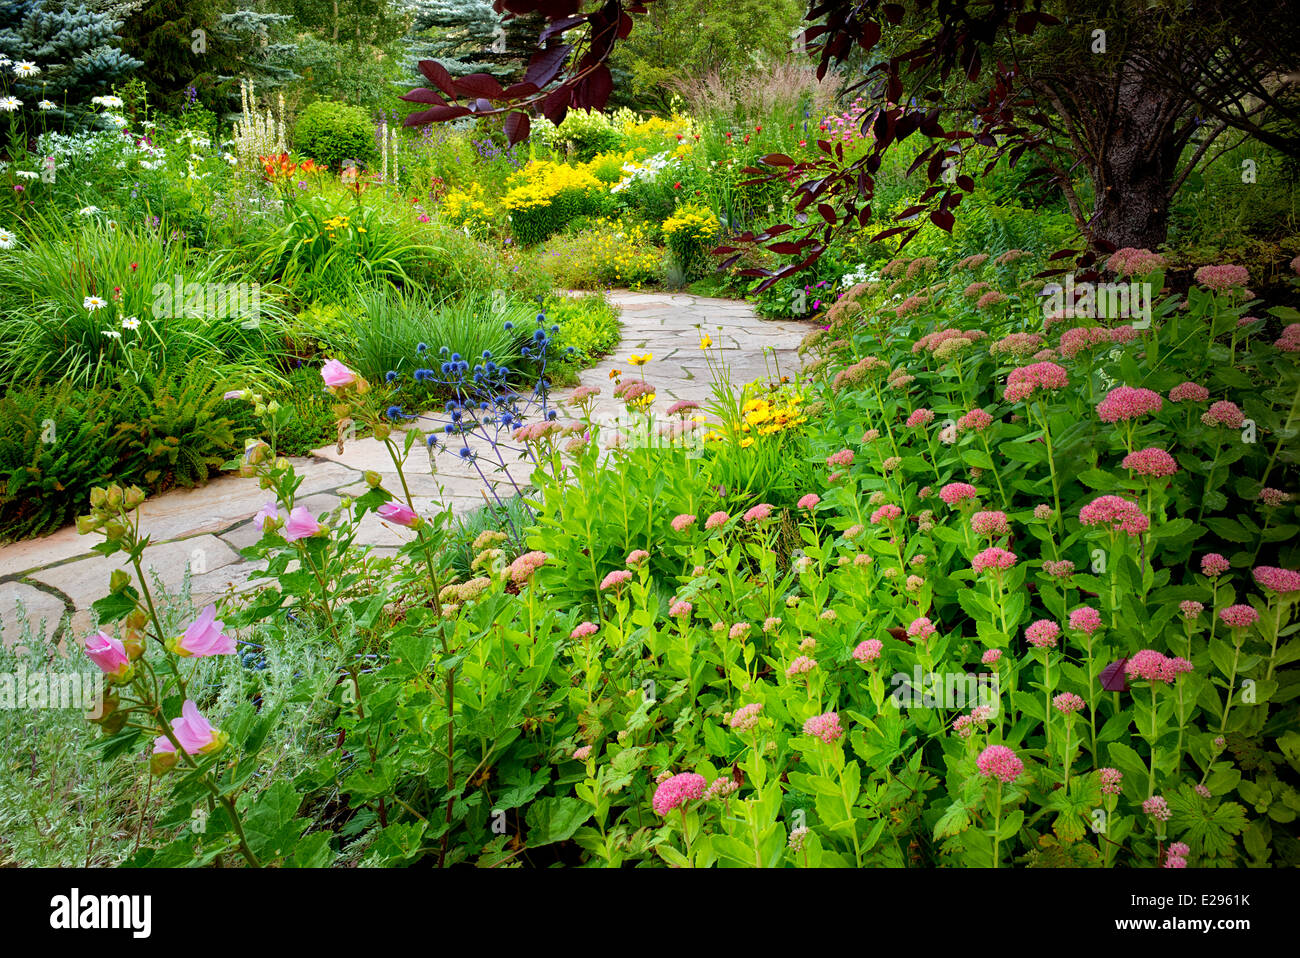 Flower garden with foreground sedums and stone path in Betty Ford Alpine Gardens. Vale Colorado - Stock Image